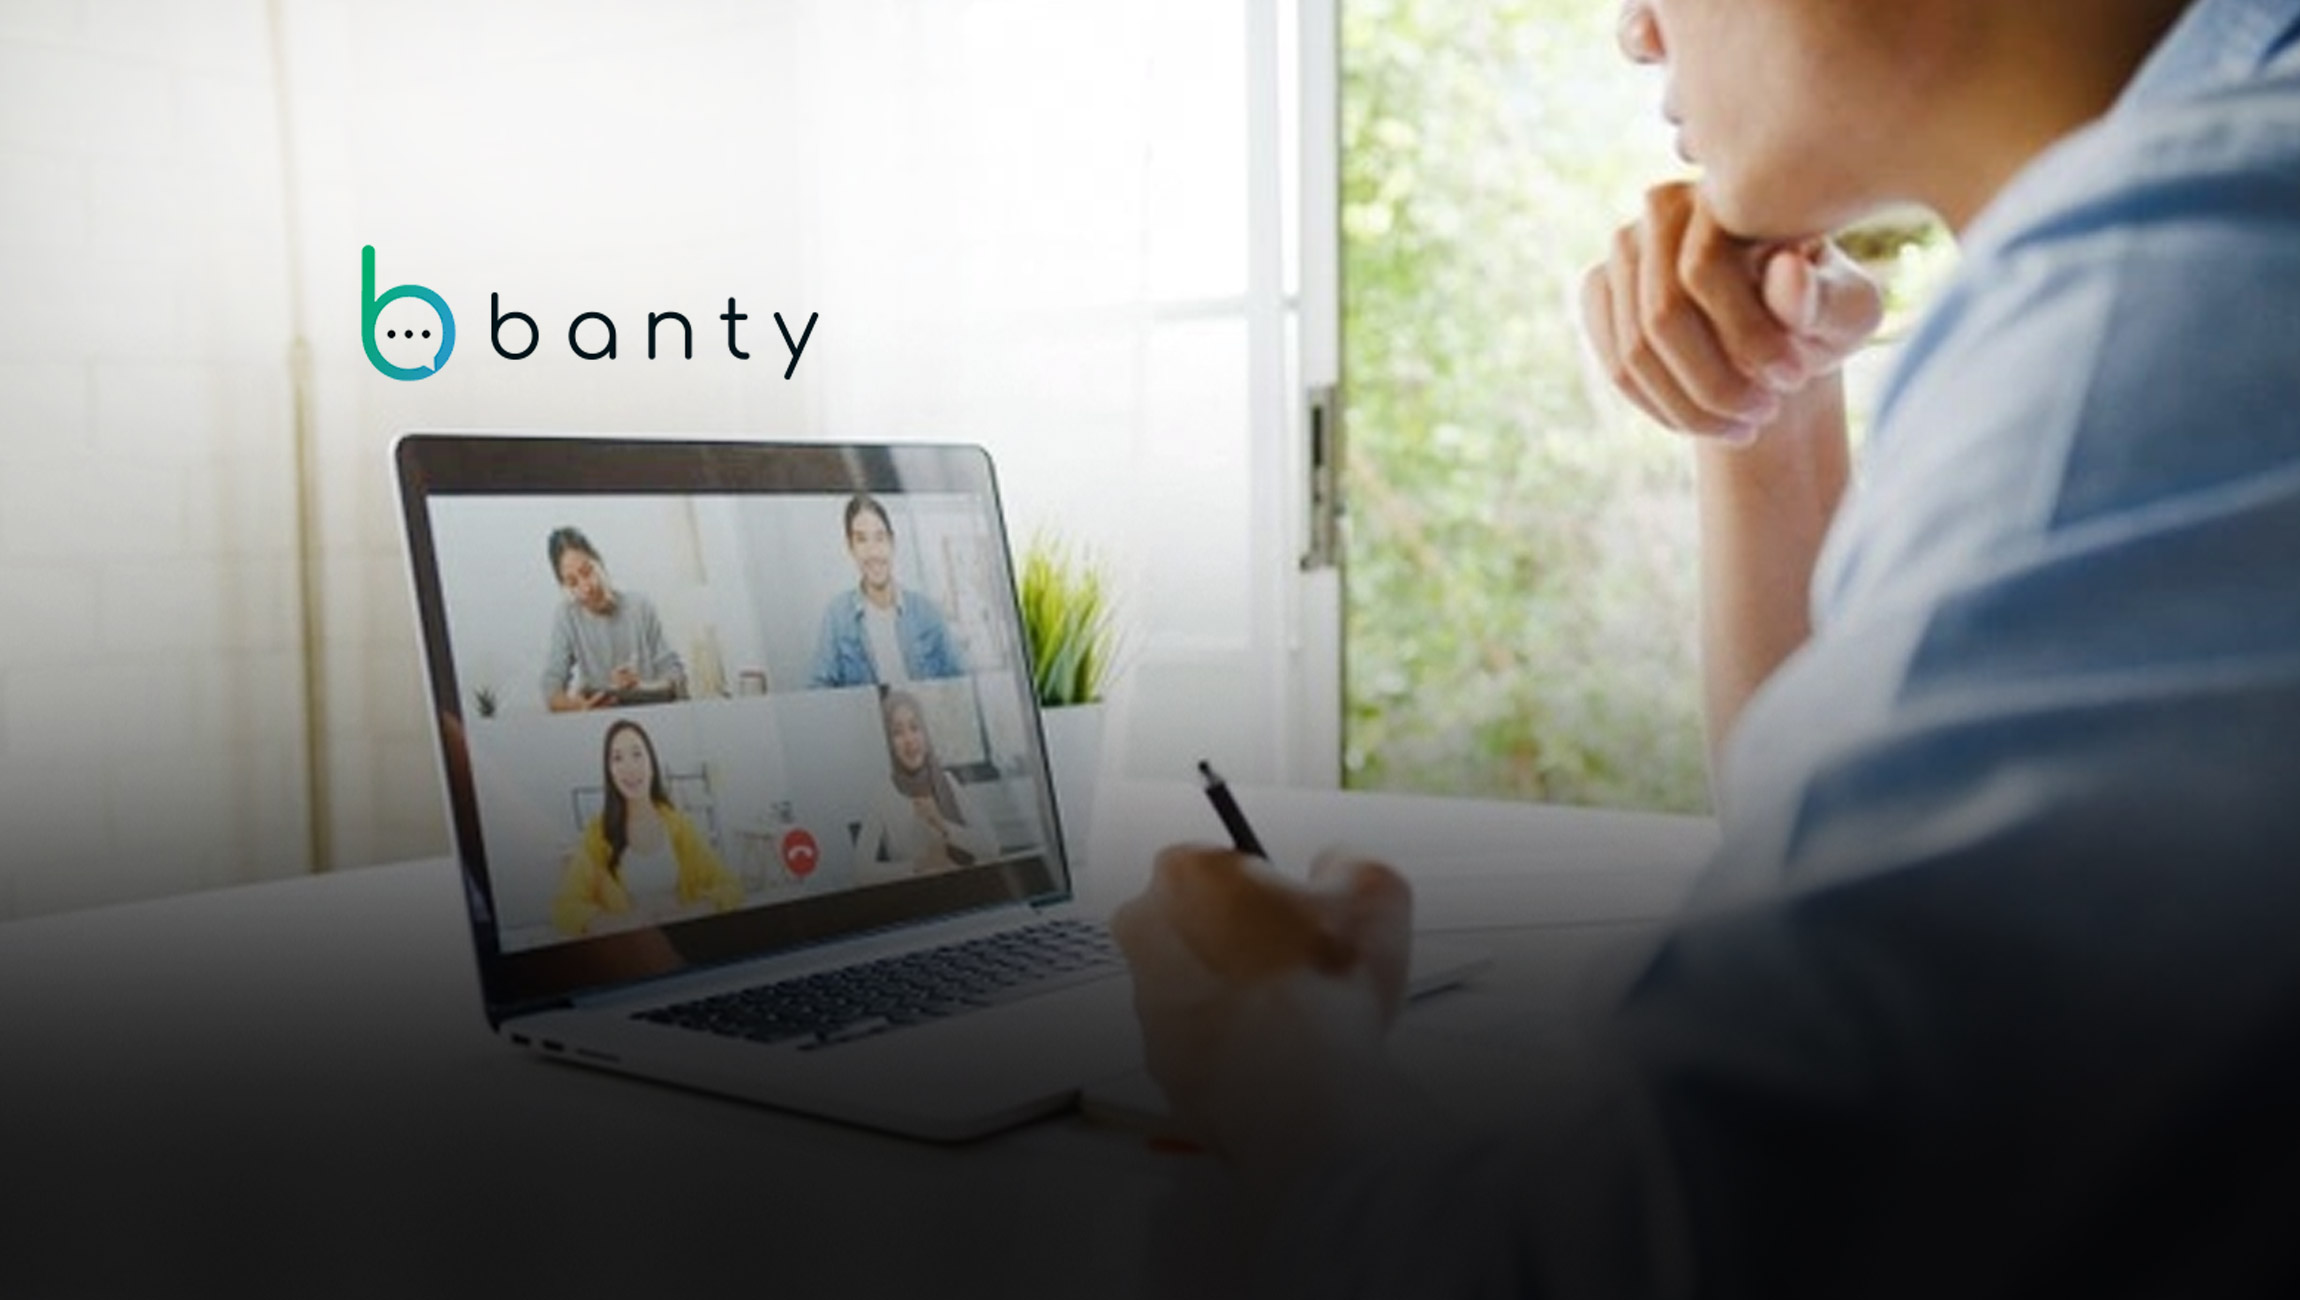 Banty Offers All Subscribers a Custom URL for their Virtual Meeting Needs